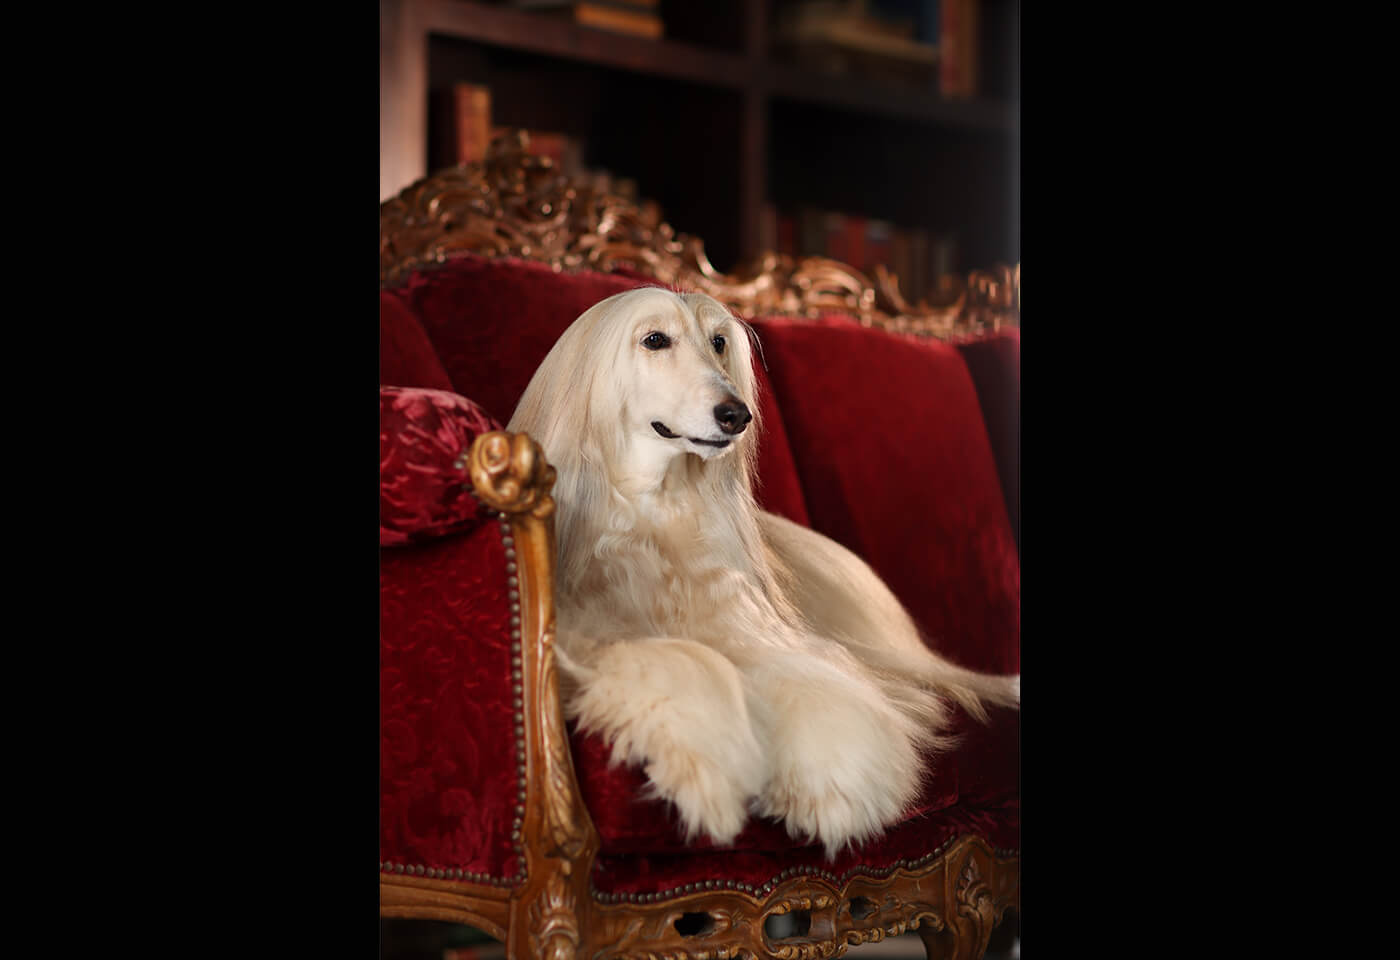 Image of Afghan Hound taken with EOS 850D